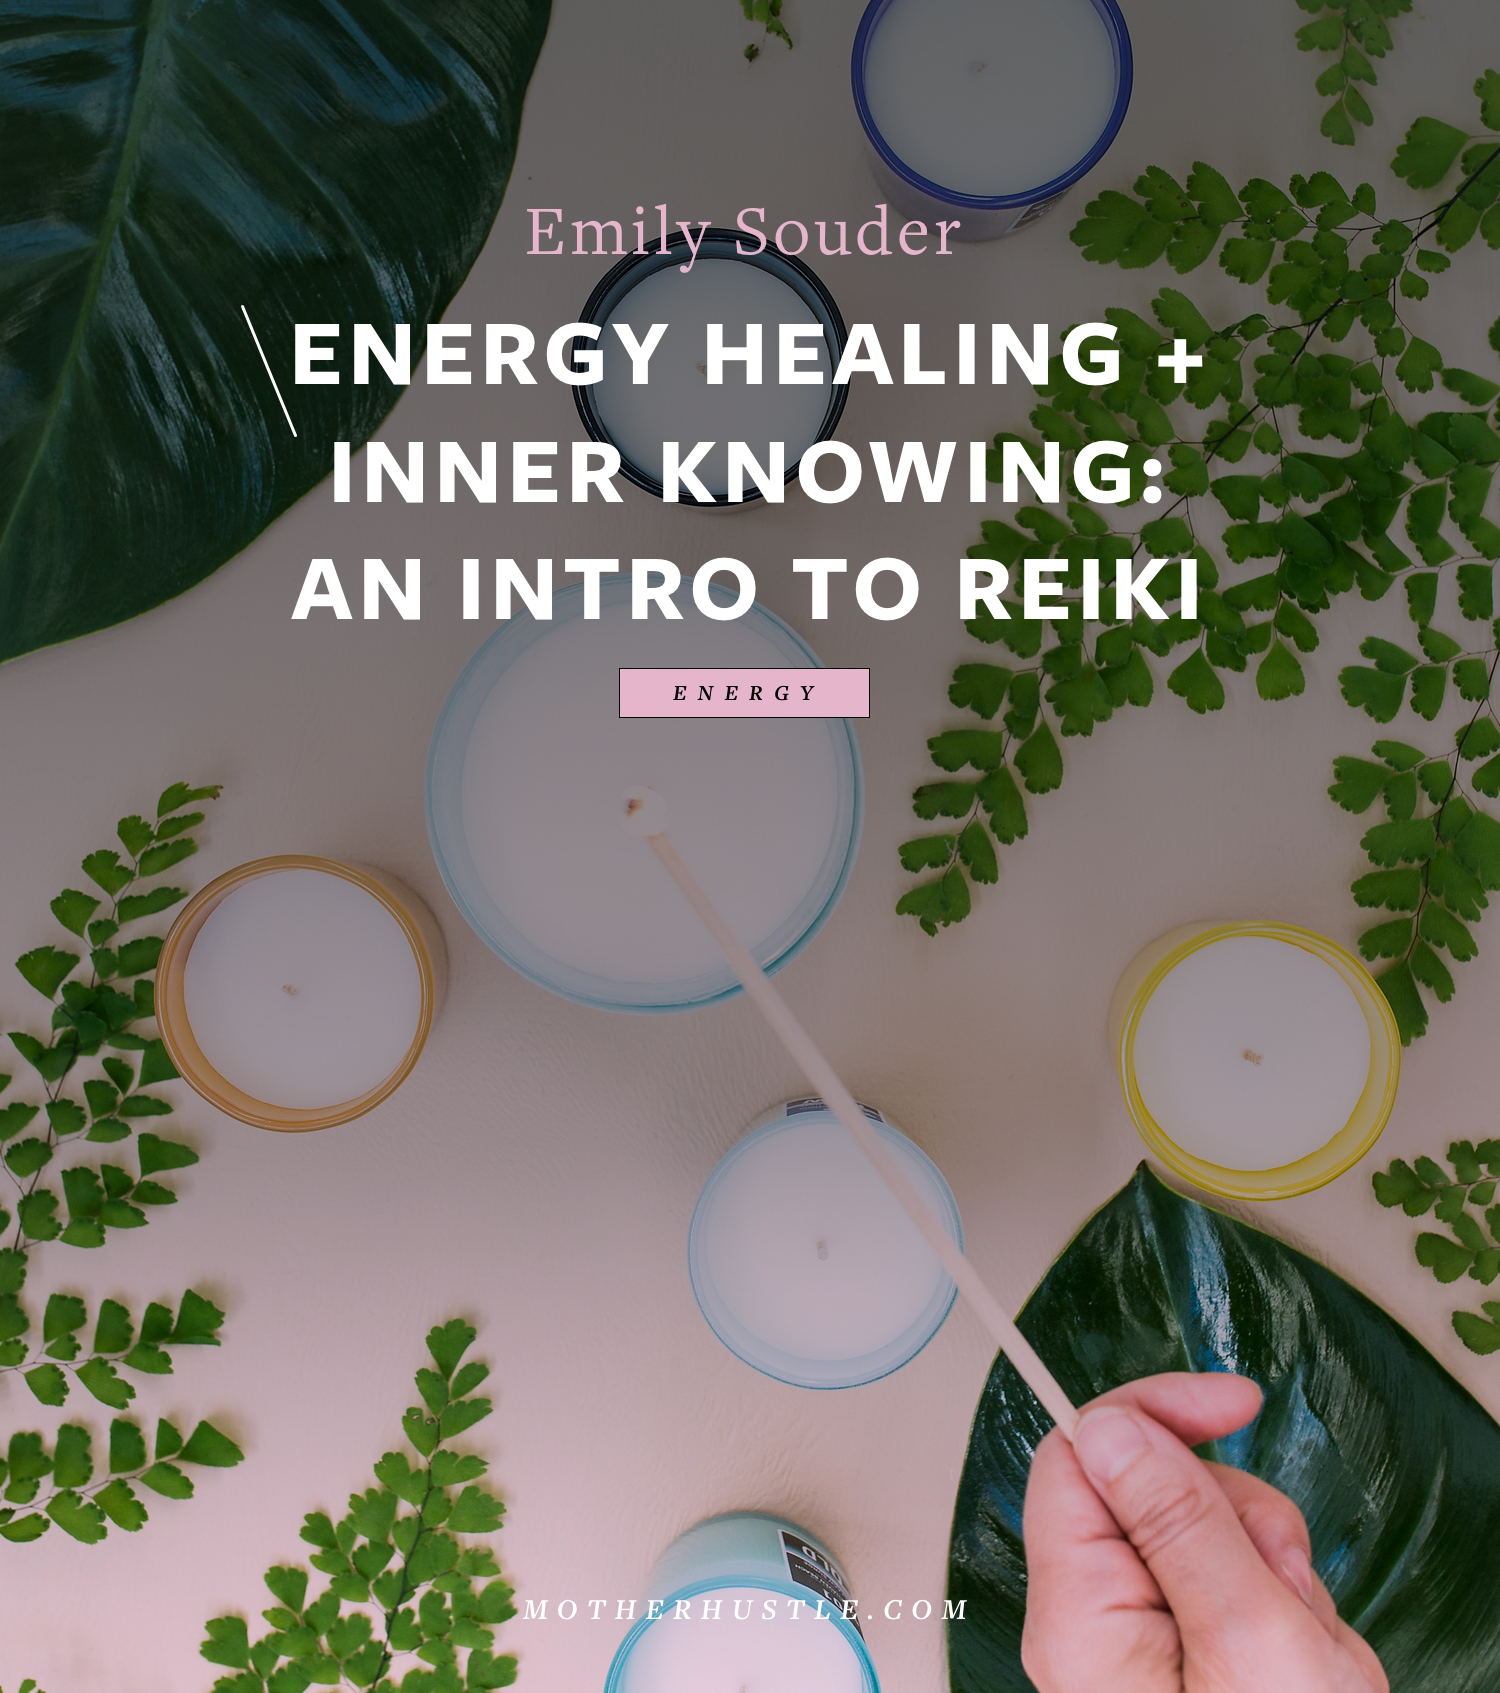 Energy Healing + Inner Knowing: An Intro to Reiki